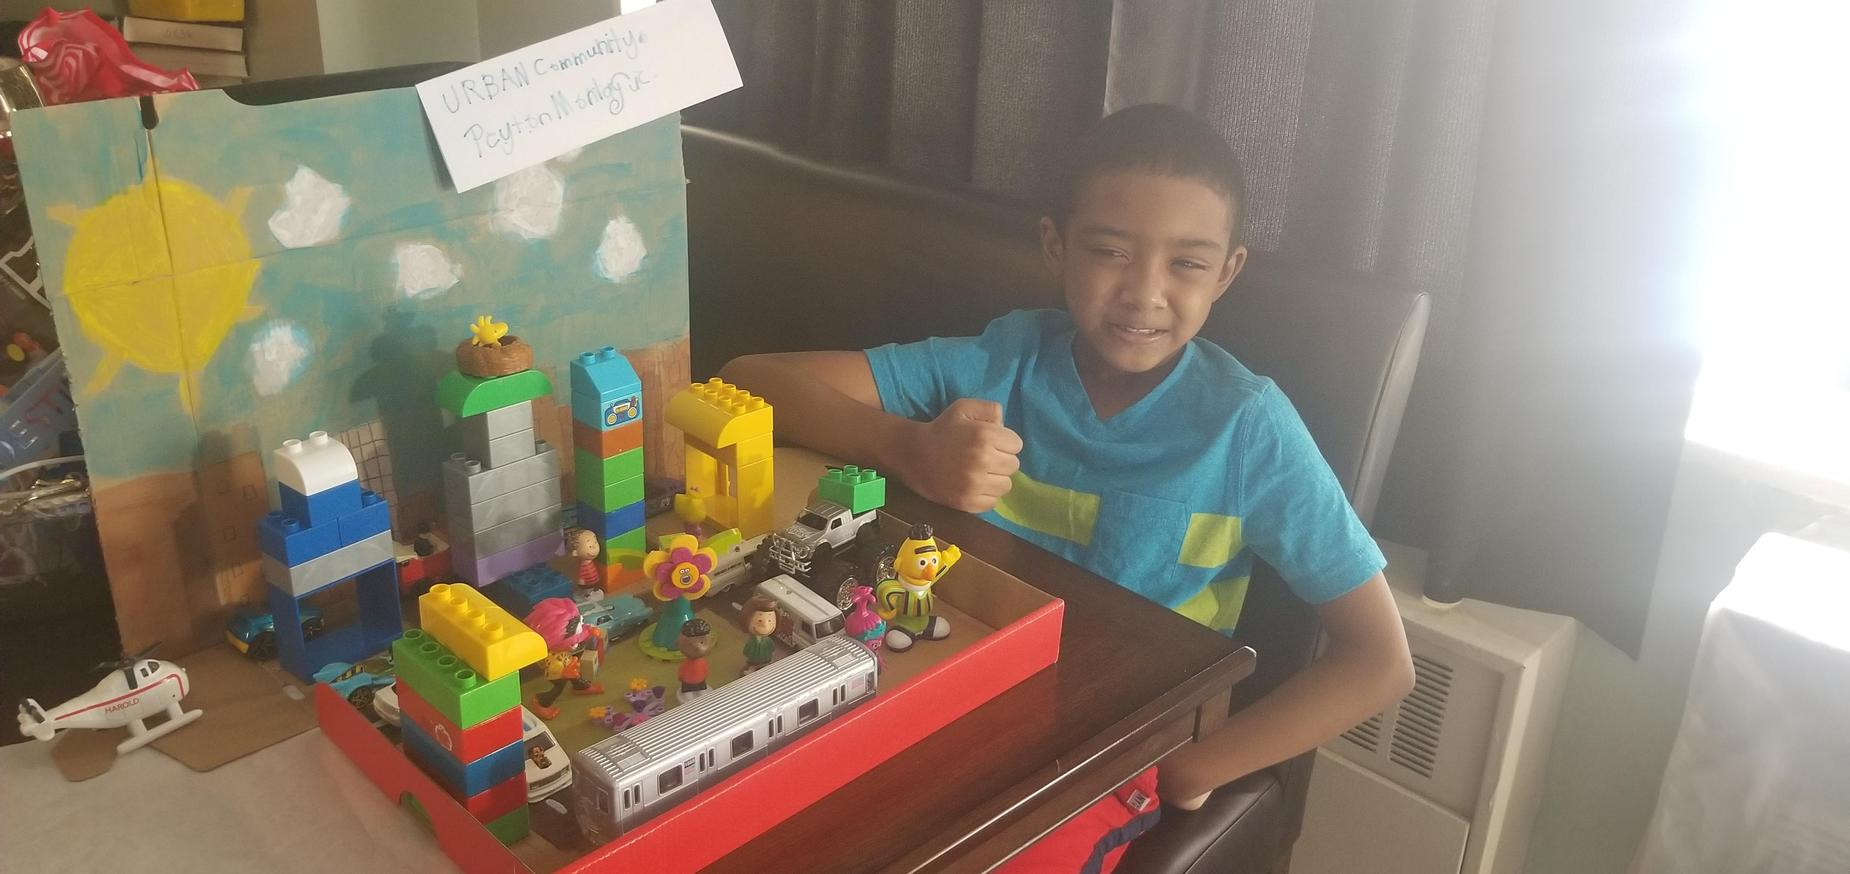 Student sitting  and smiling with a thumbs up, next to a lego urban community